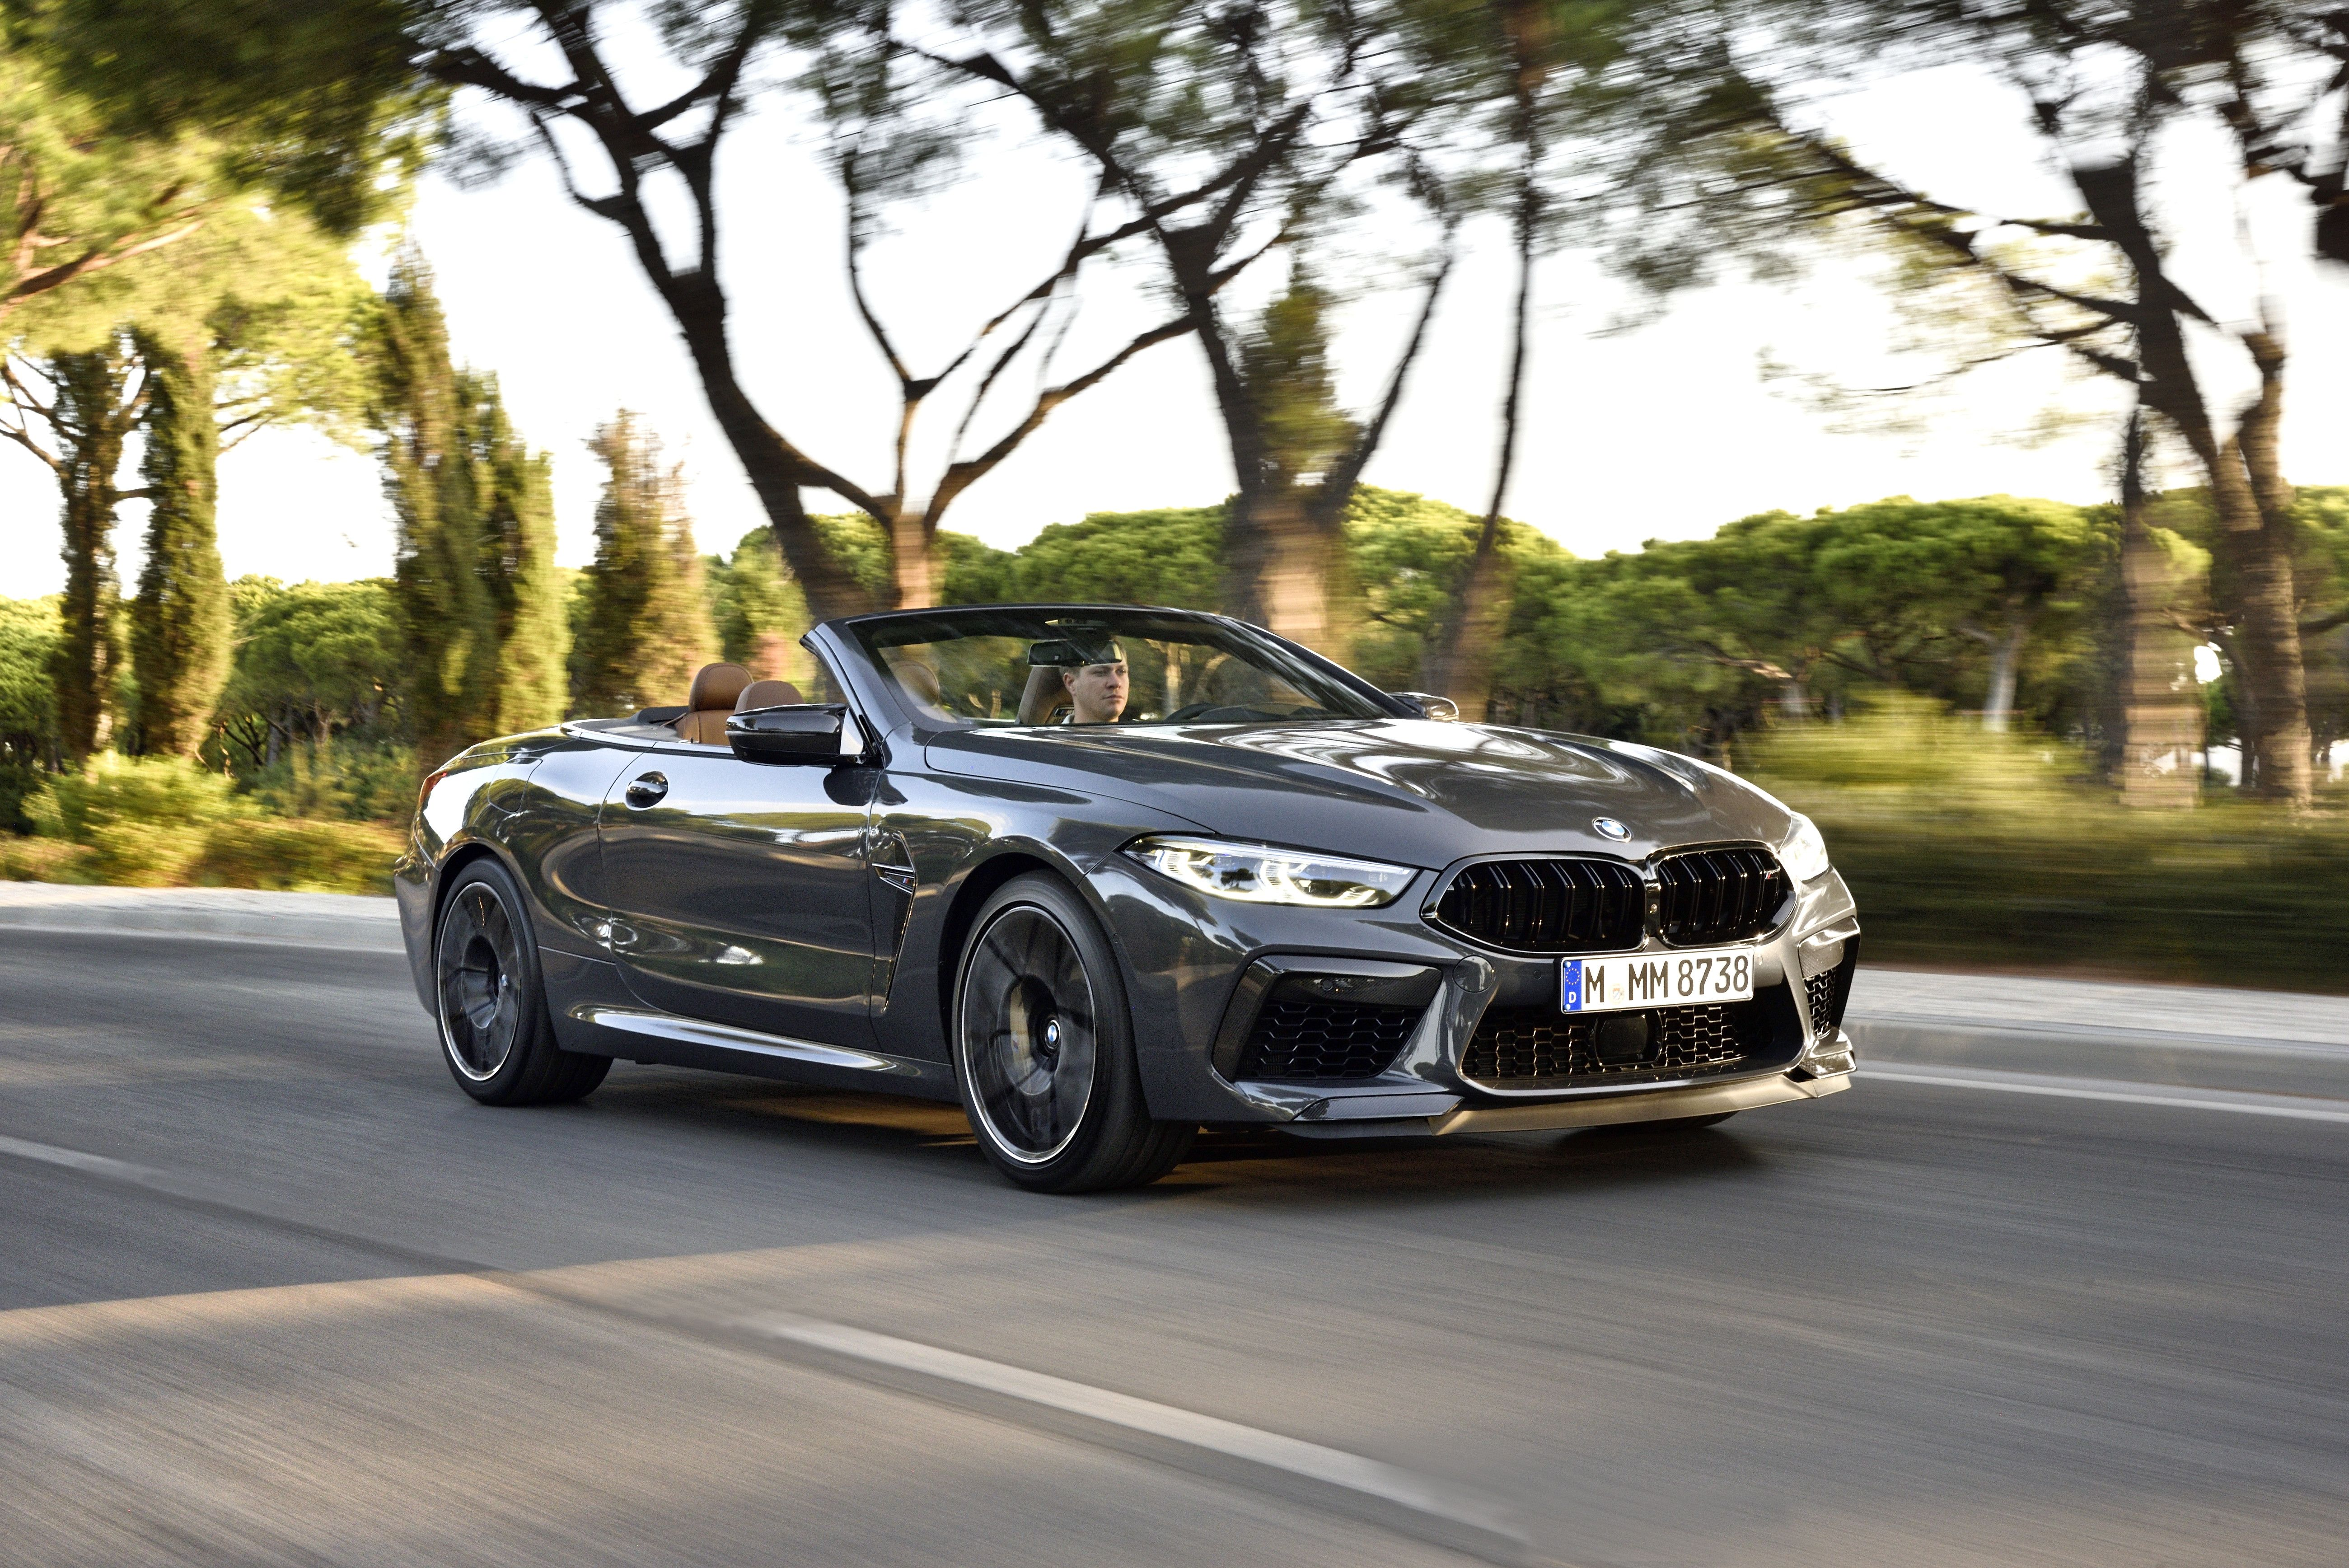 Pin By Bilal El On Bmw In 2020 Bmw Convertible New Bmw